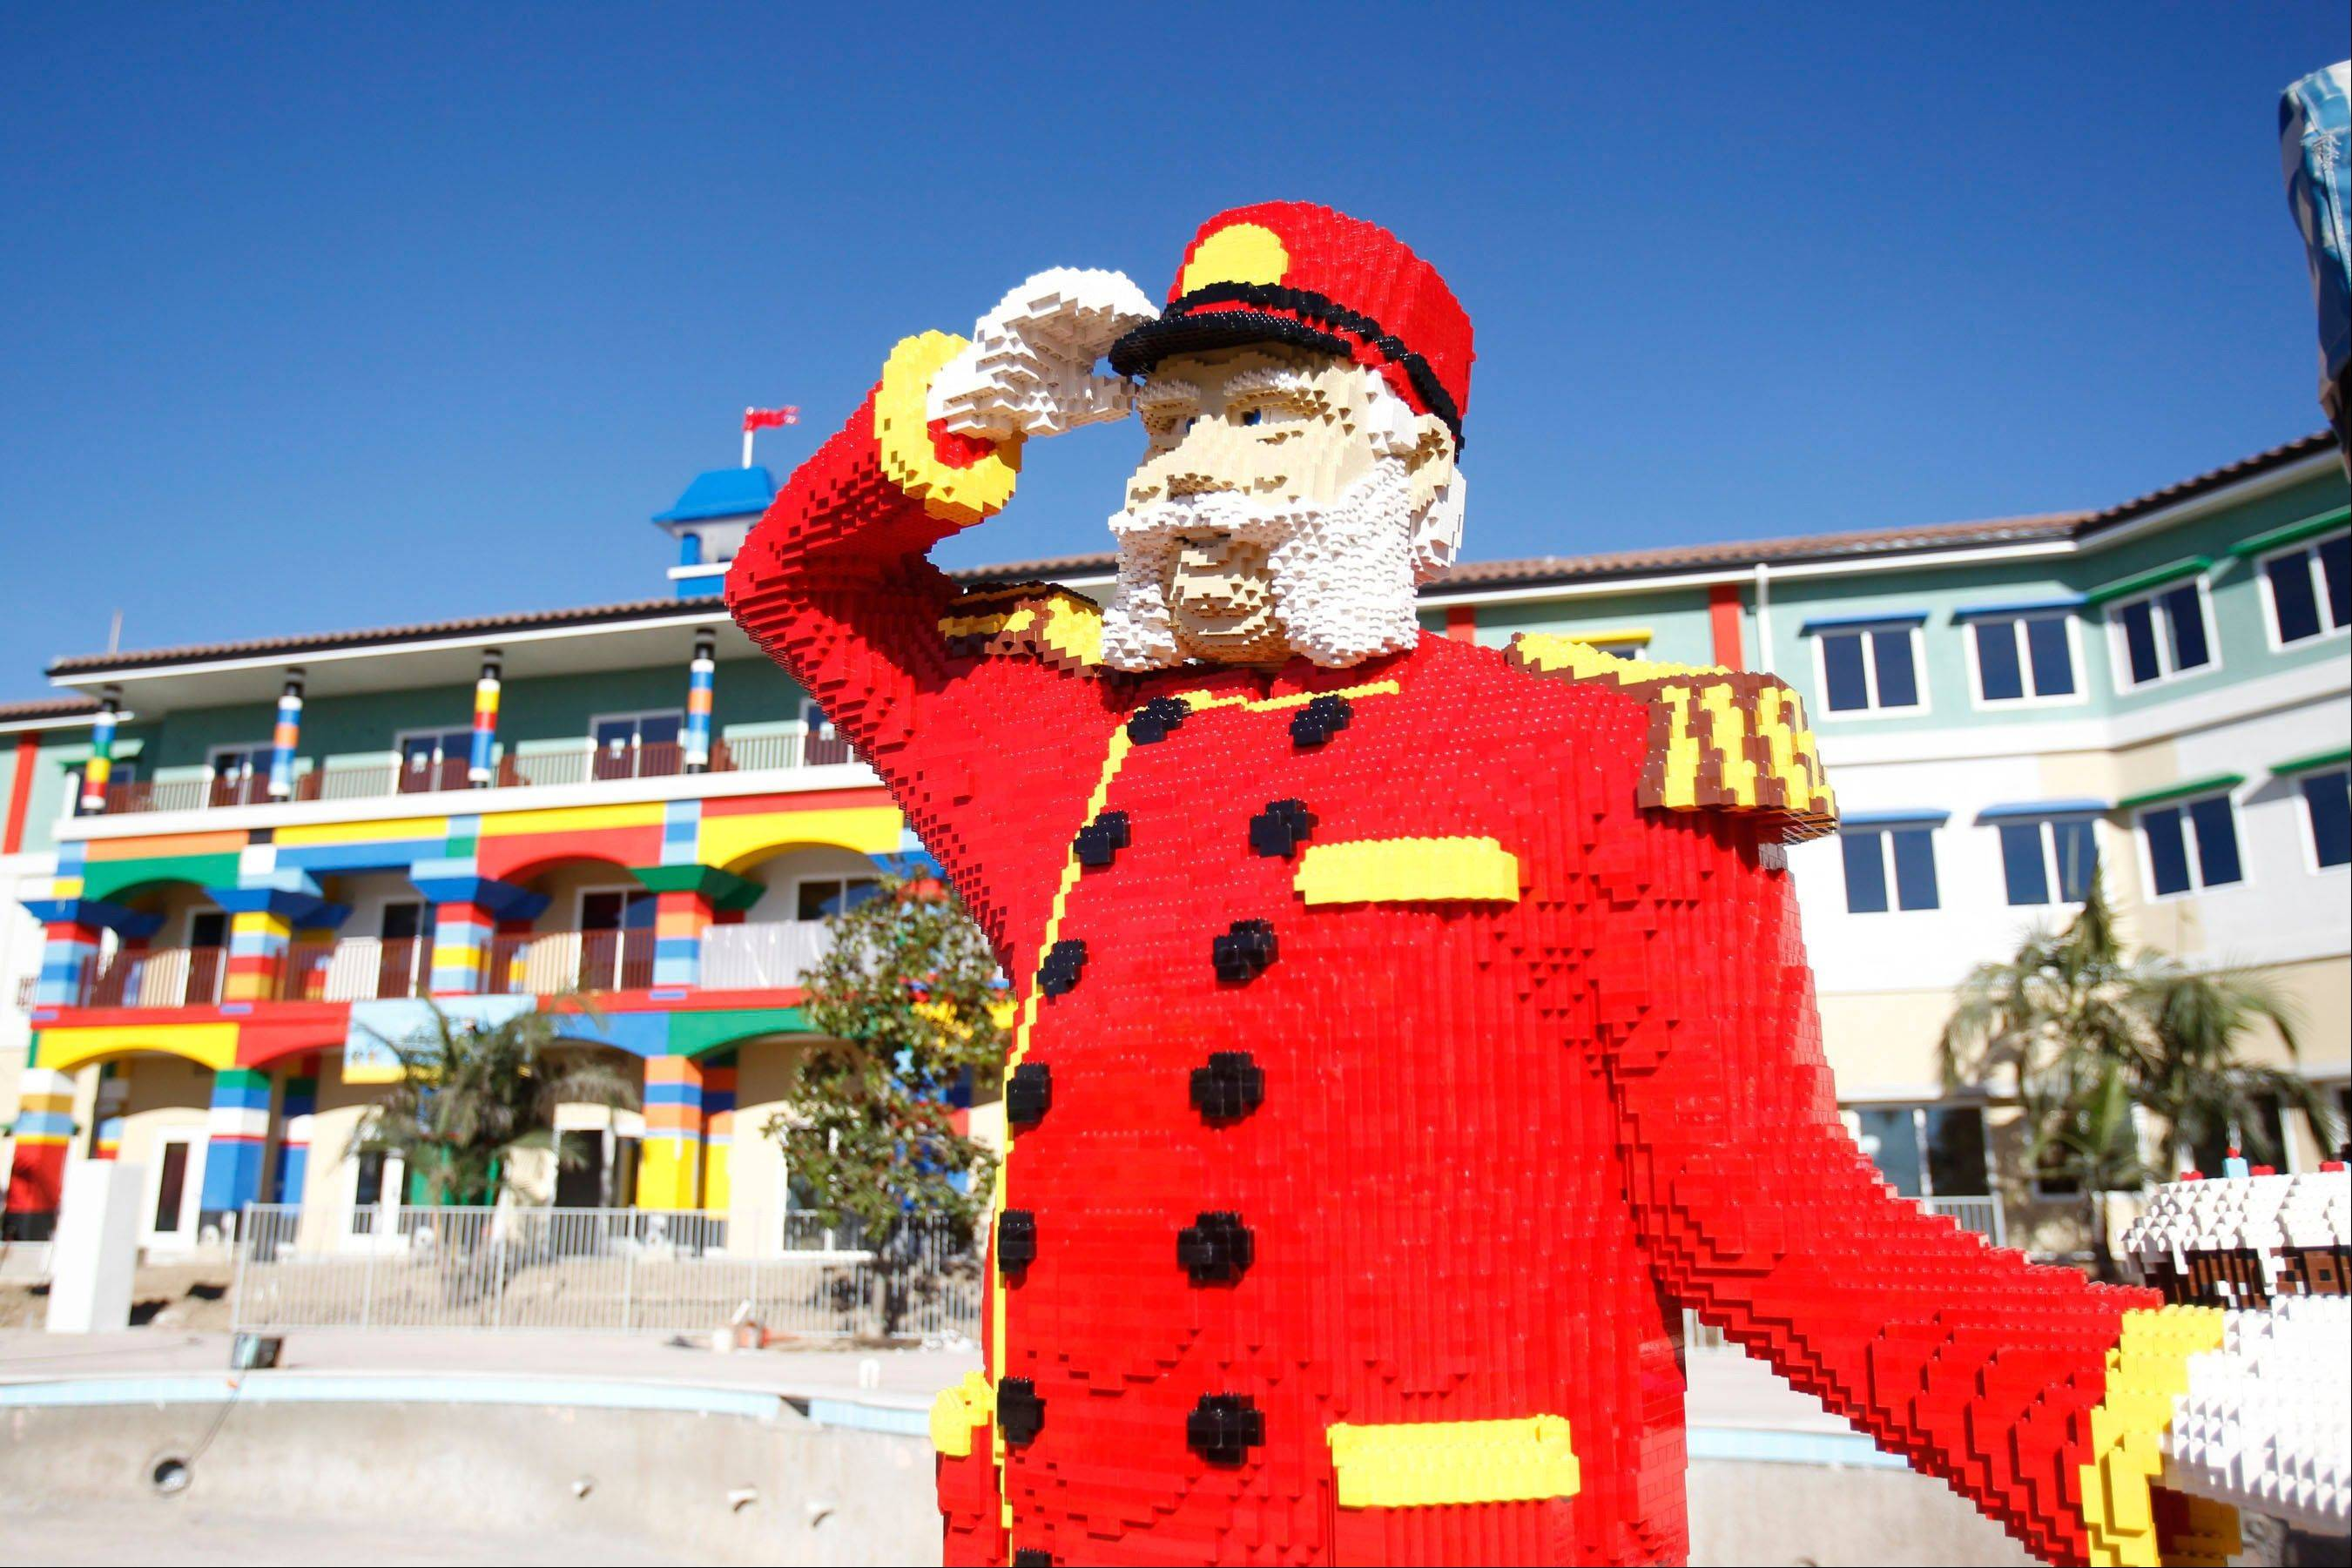 A Bellhop made of Legos greets guests in front of the Legoland Hotel at Legoland California Resort in Carlsbad, Calif.